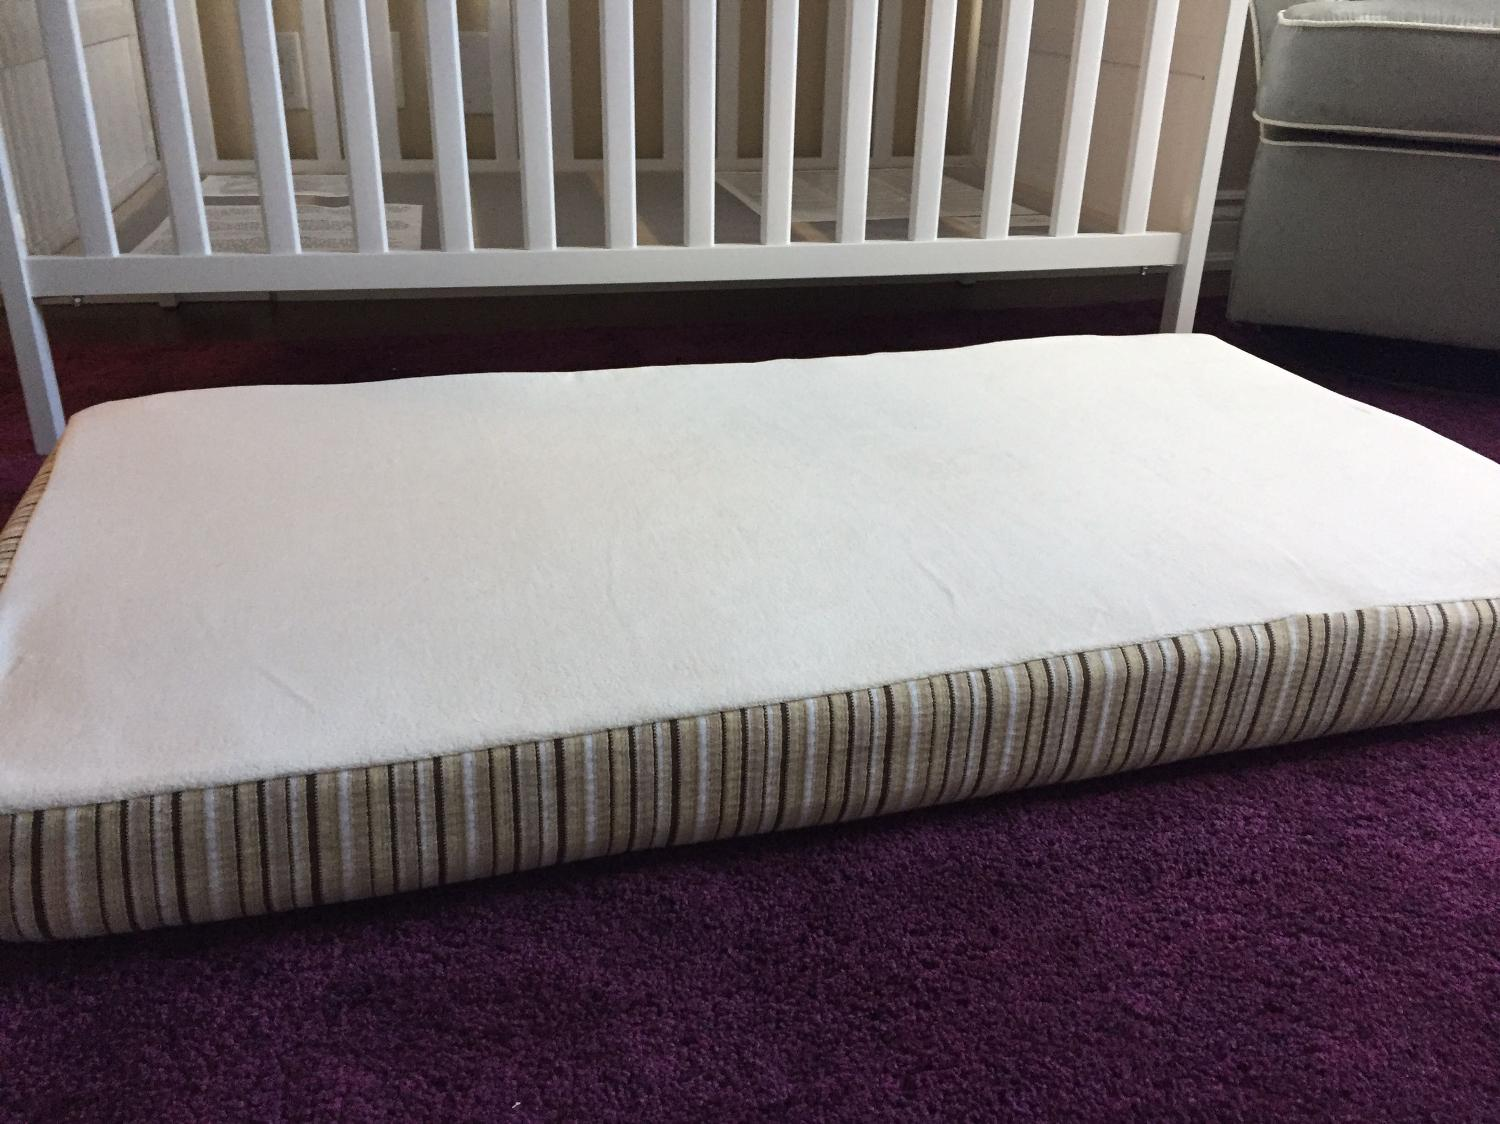 Best Natart Crib Mattress Foam Mattress For Sale In Dollard Des Ormeaux Quebec For 2017